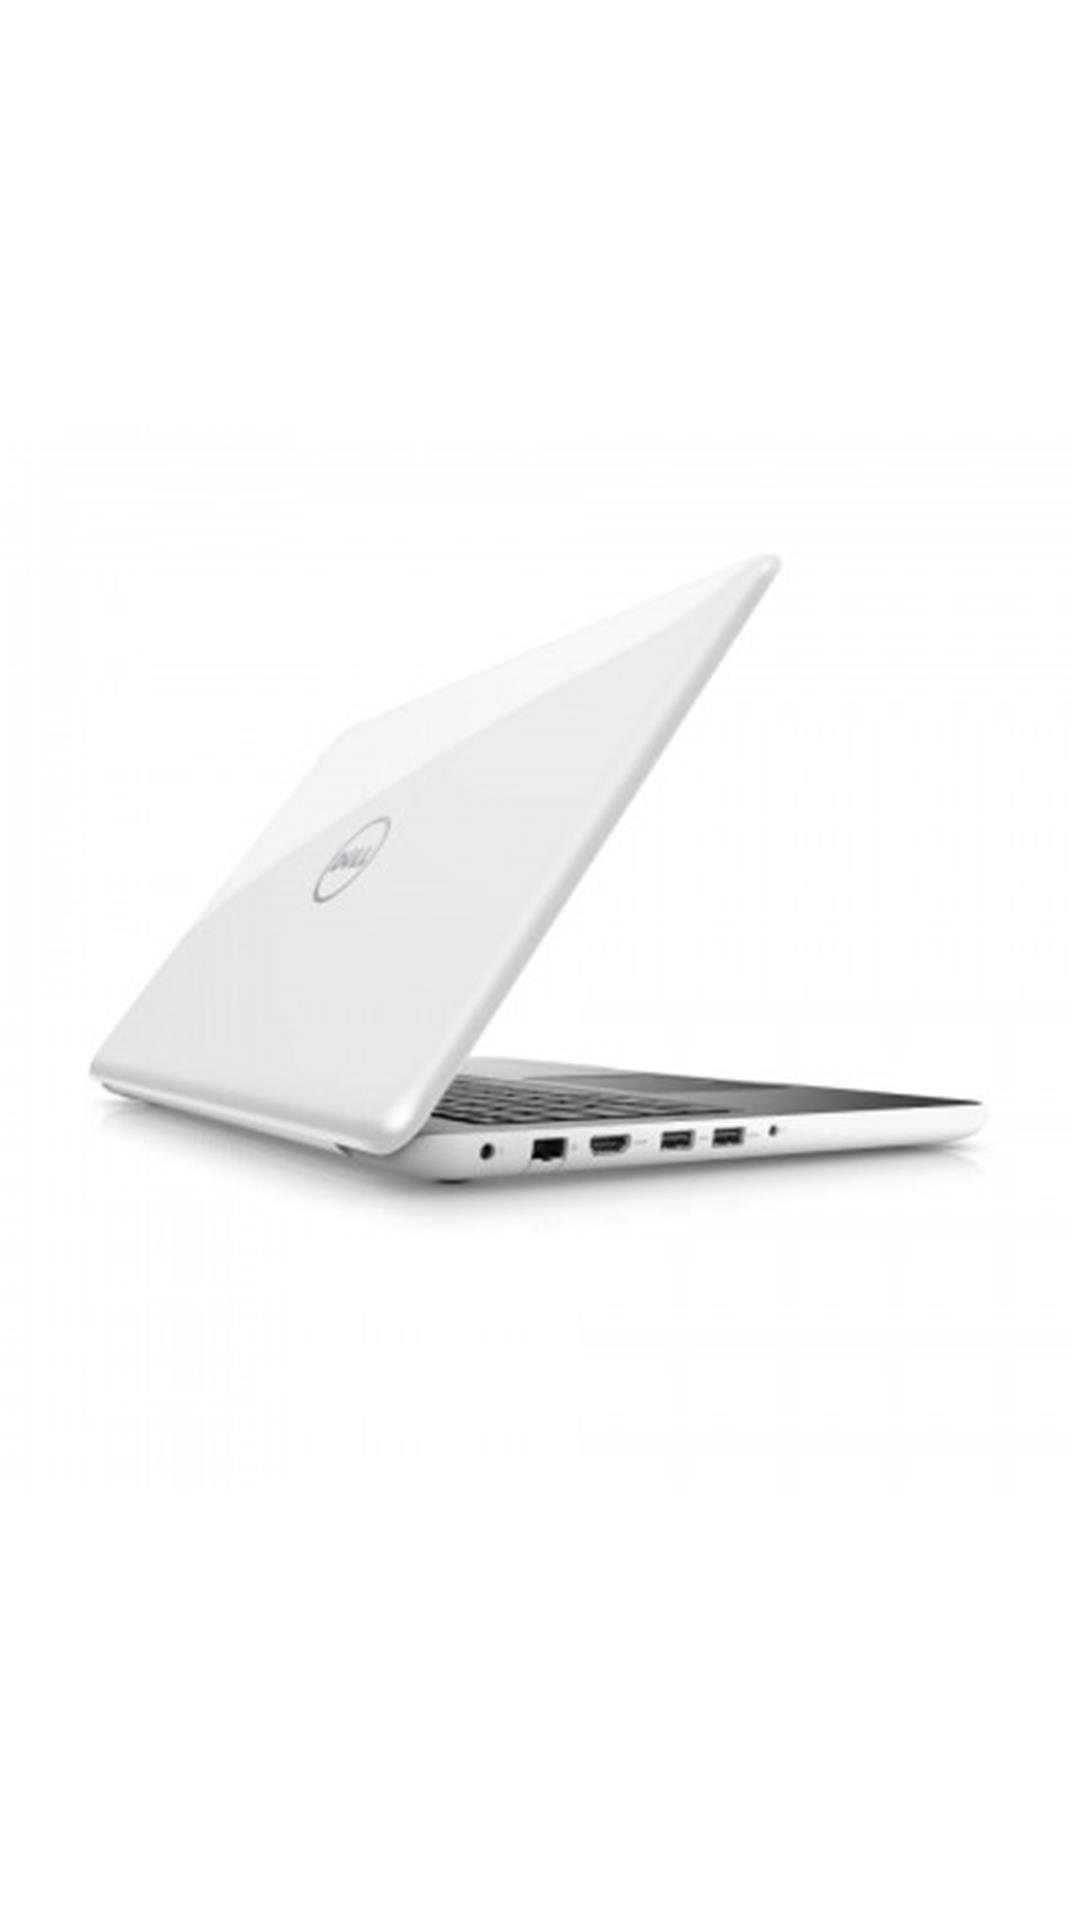 "Dell Inspiron 15 5567 (Core i5 (7th Gen)/16 GB /2 TB/39.62 cm (15.6 "")/Windows 10 Home/4 GB) (White)"